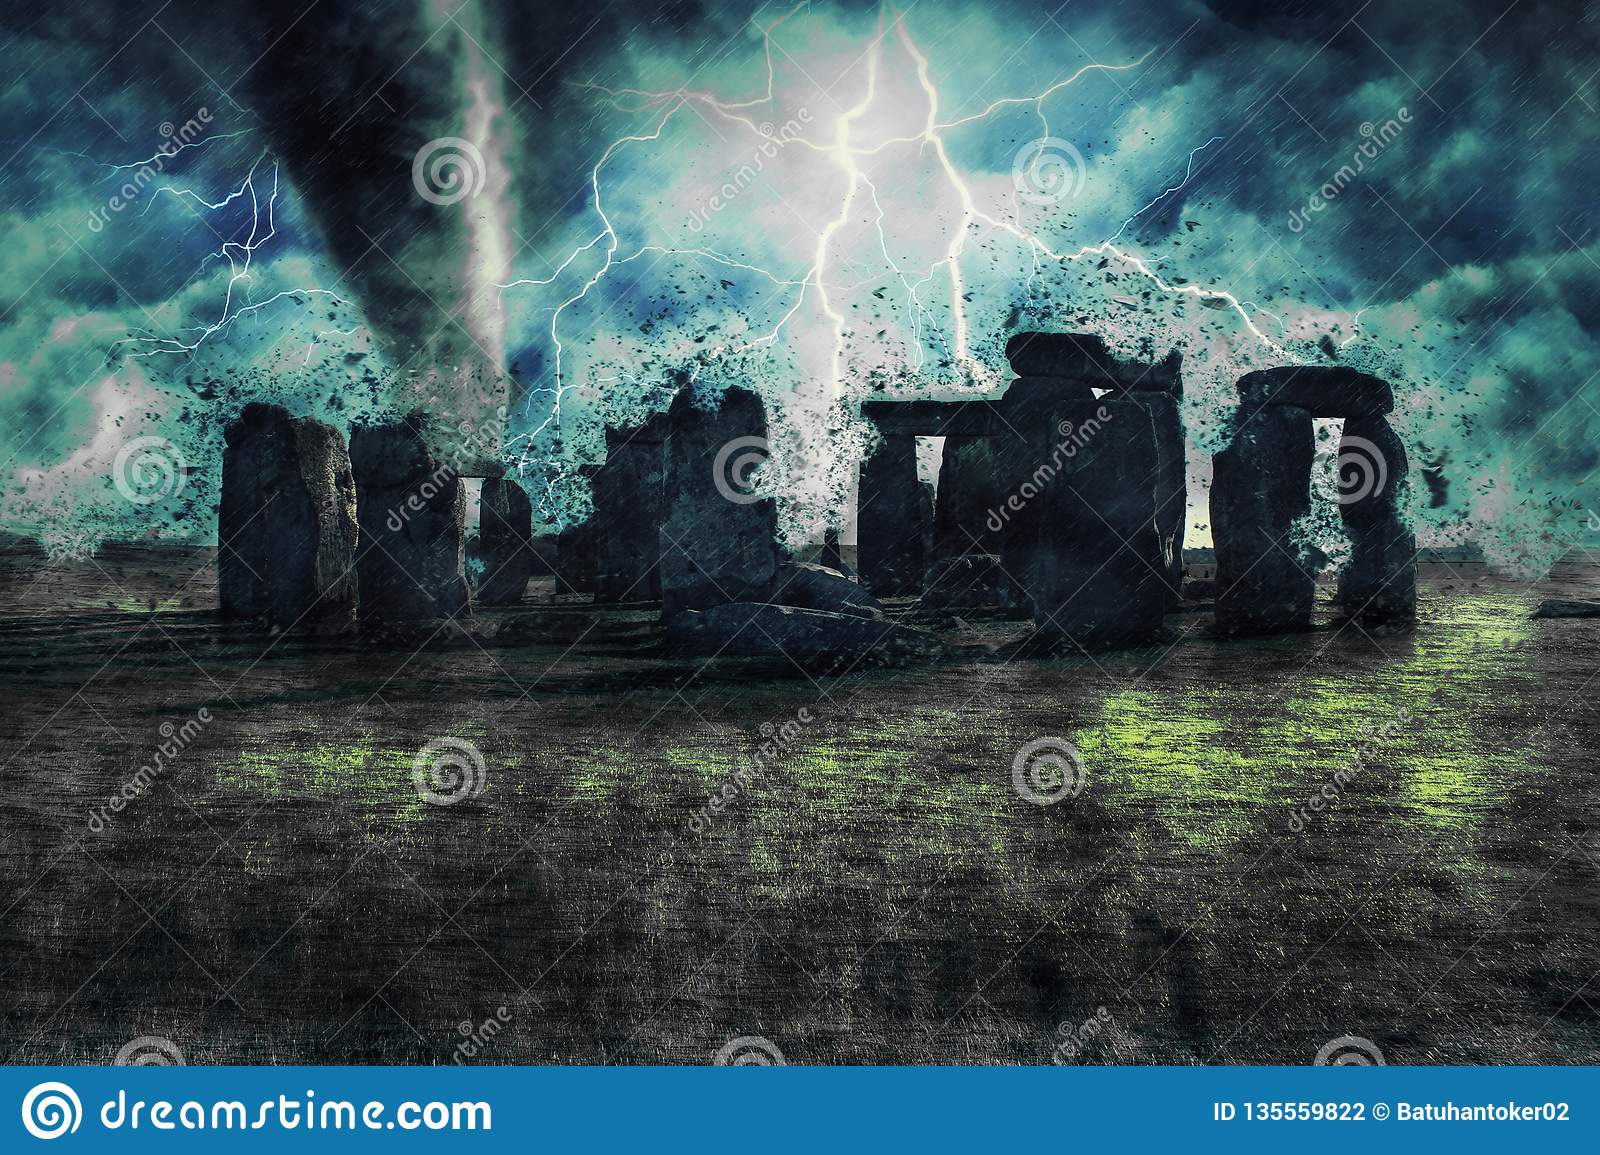 Stonehenge during the heavy storm, rain and lighting in England